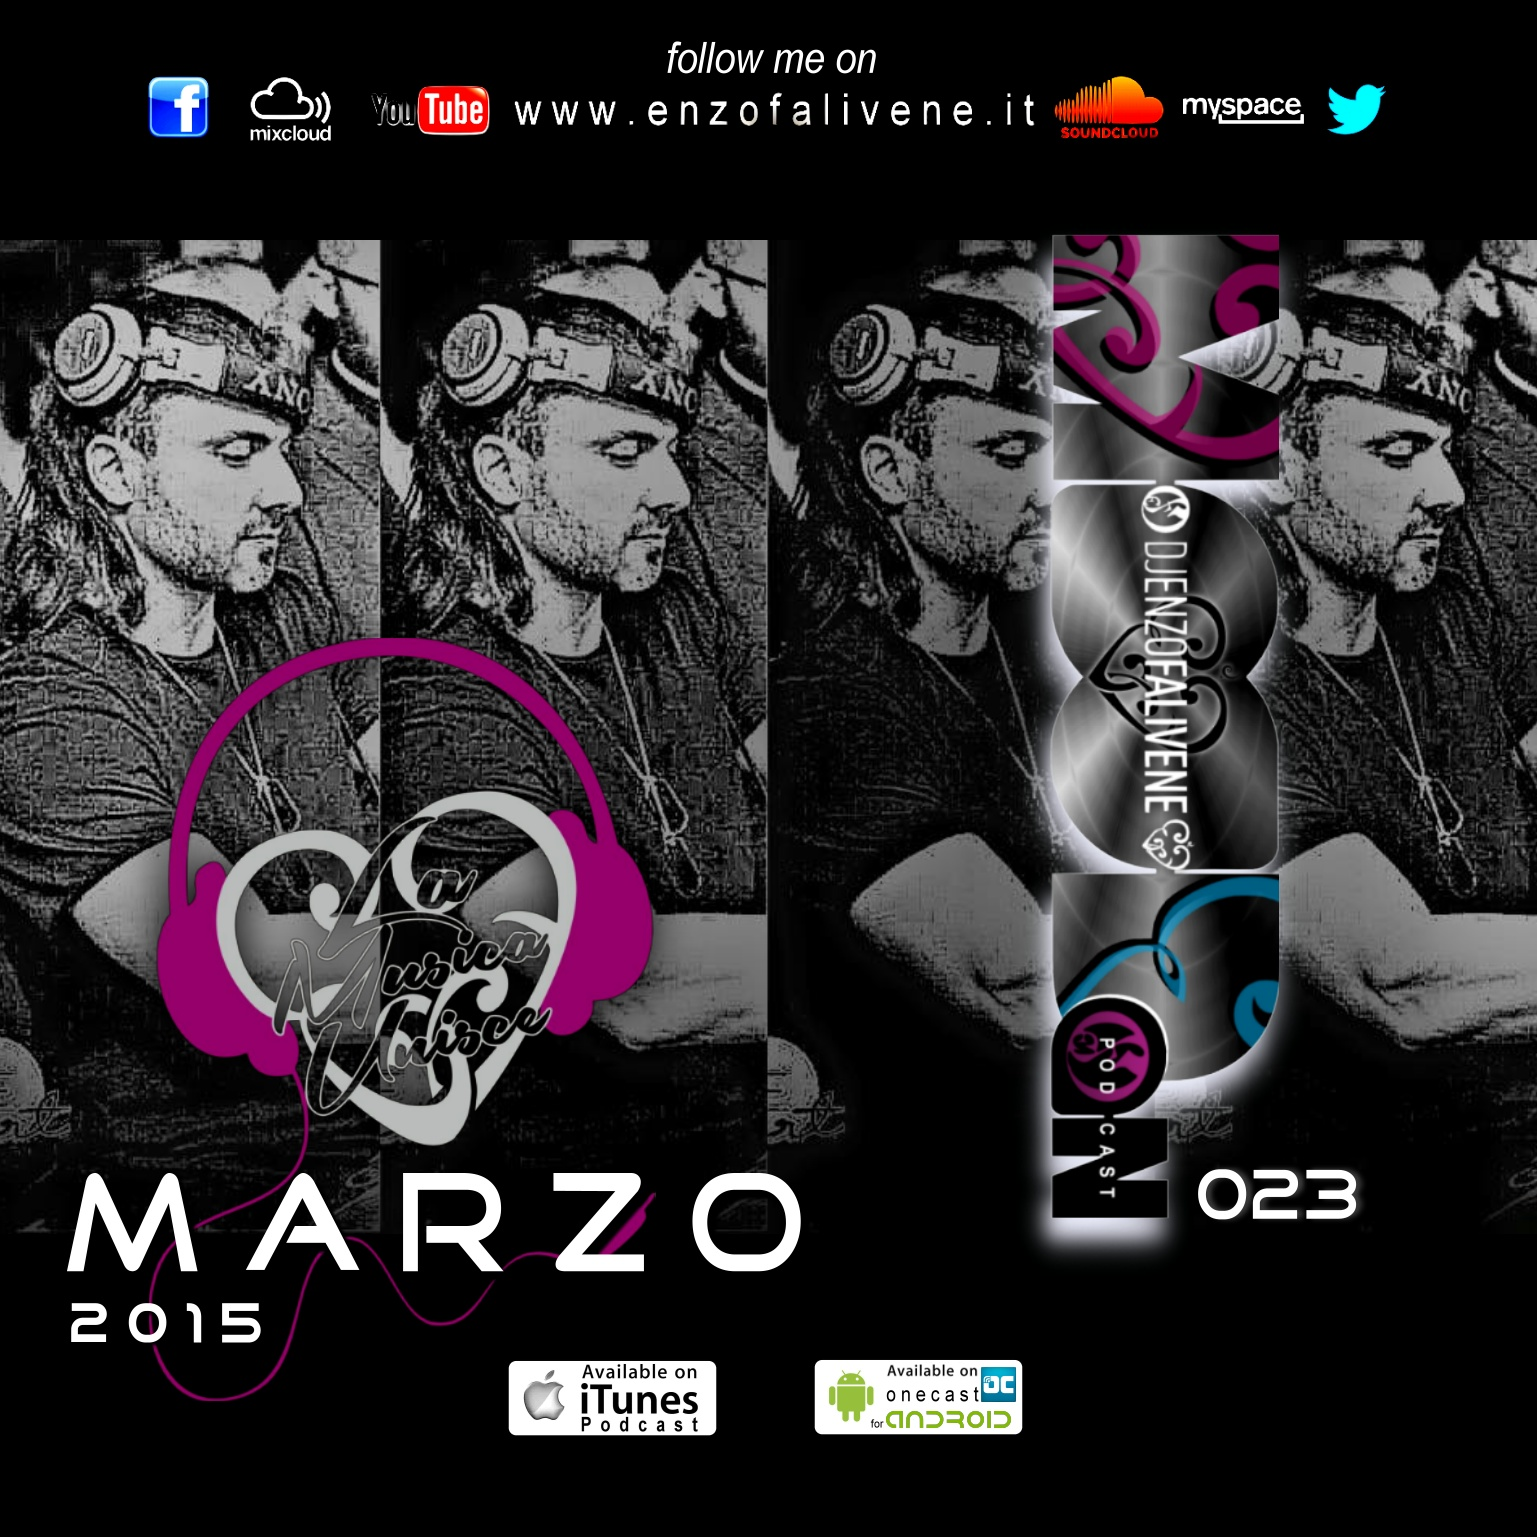 Dj Enzo Falivene - Mood On 023 Marzo 2015